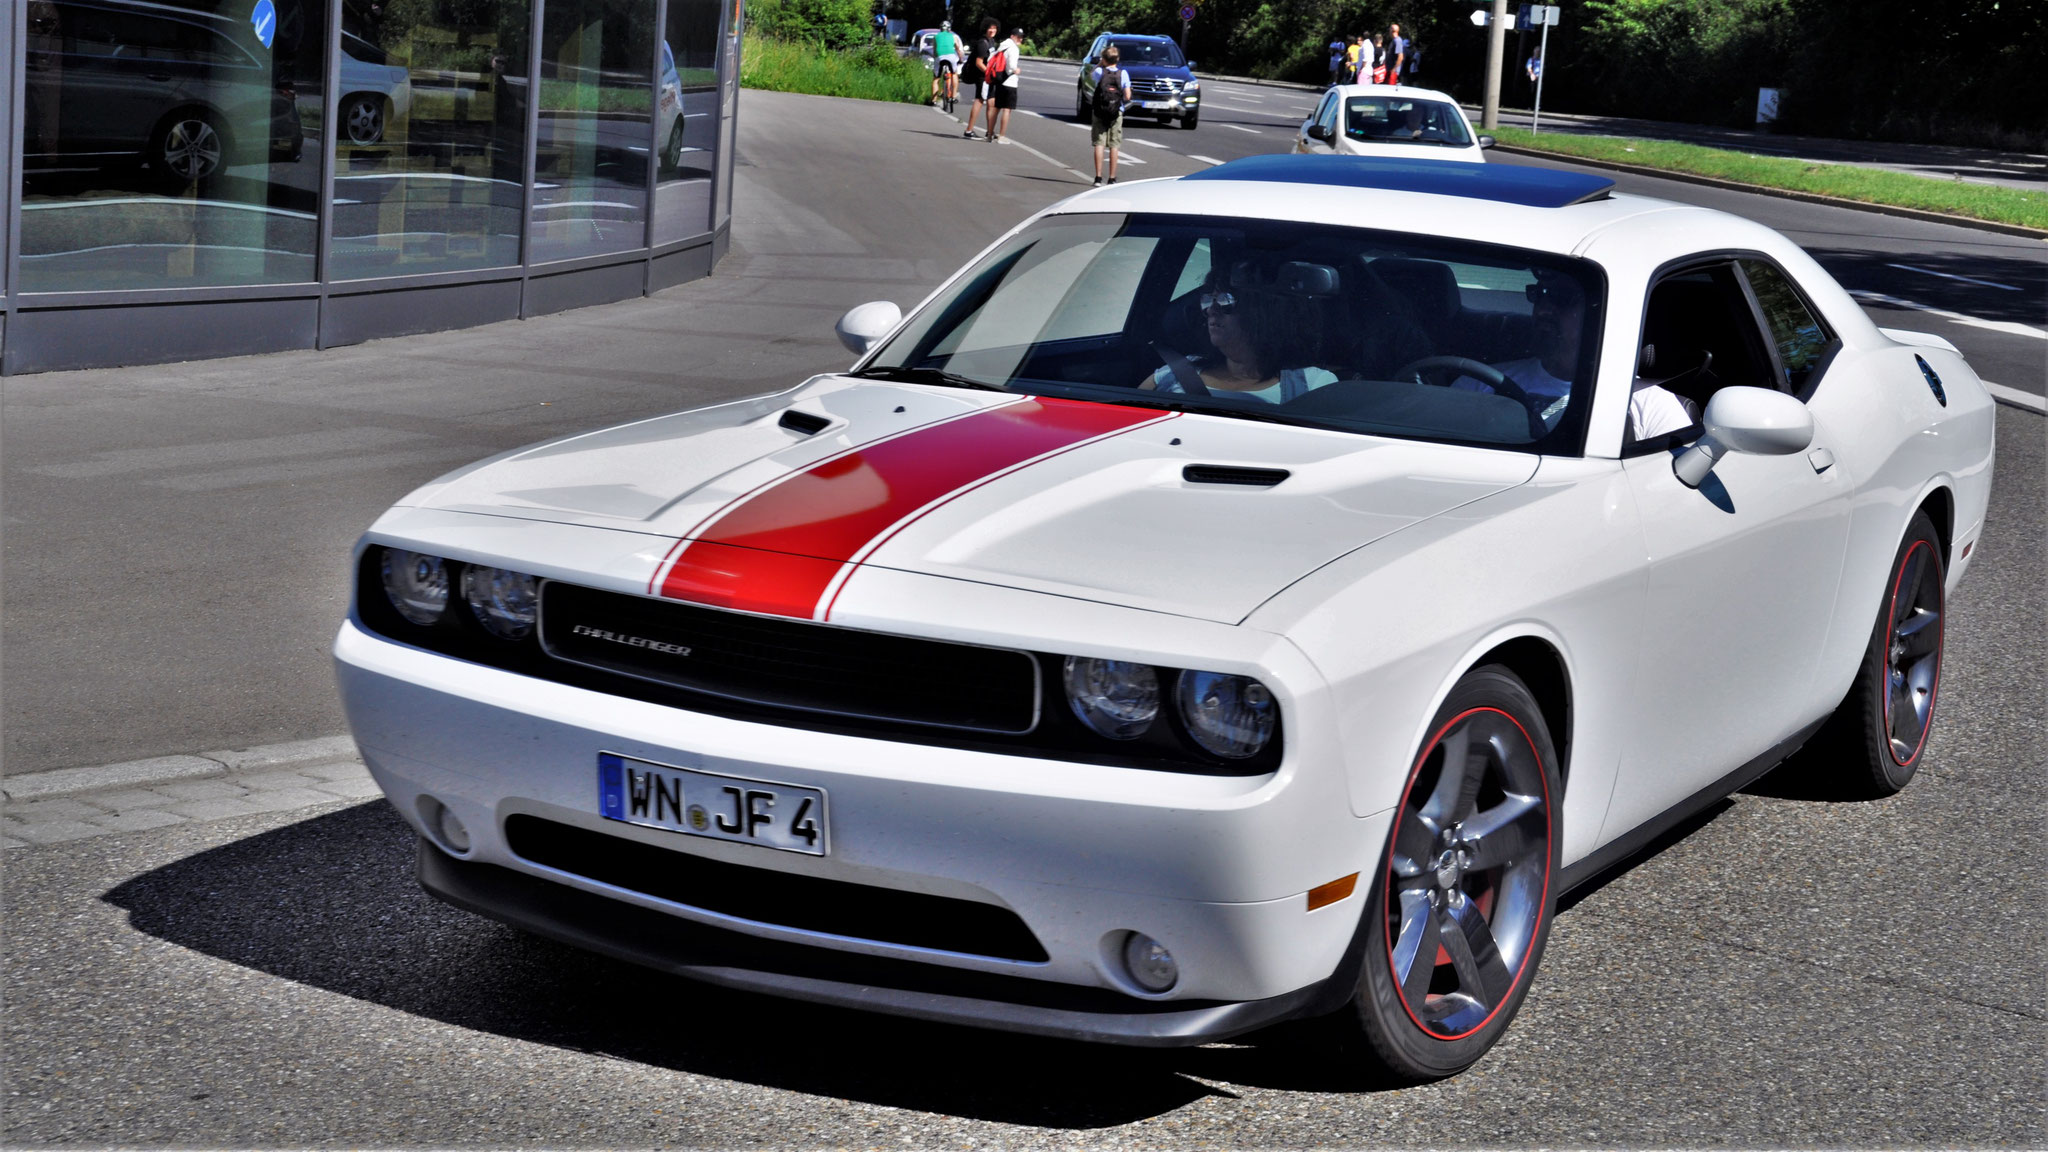 Dodge Challenger SRT 8 - WN-JF-4